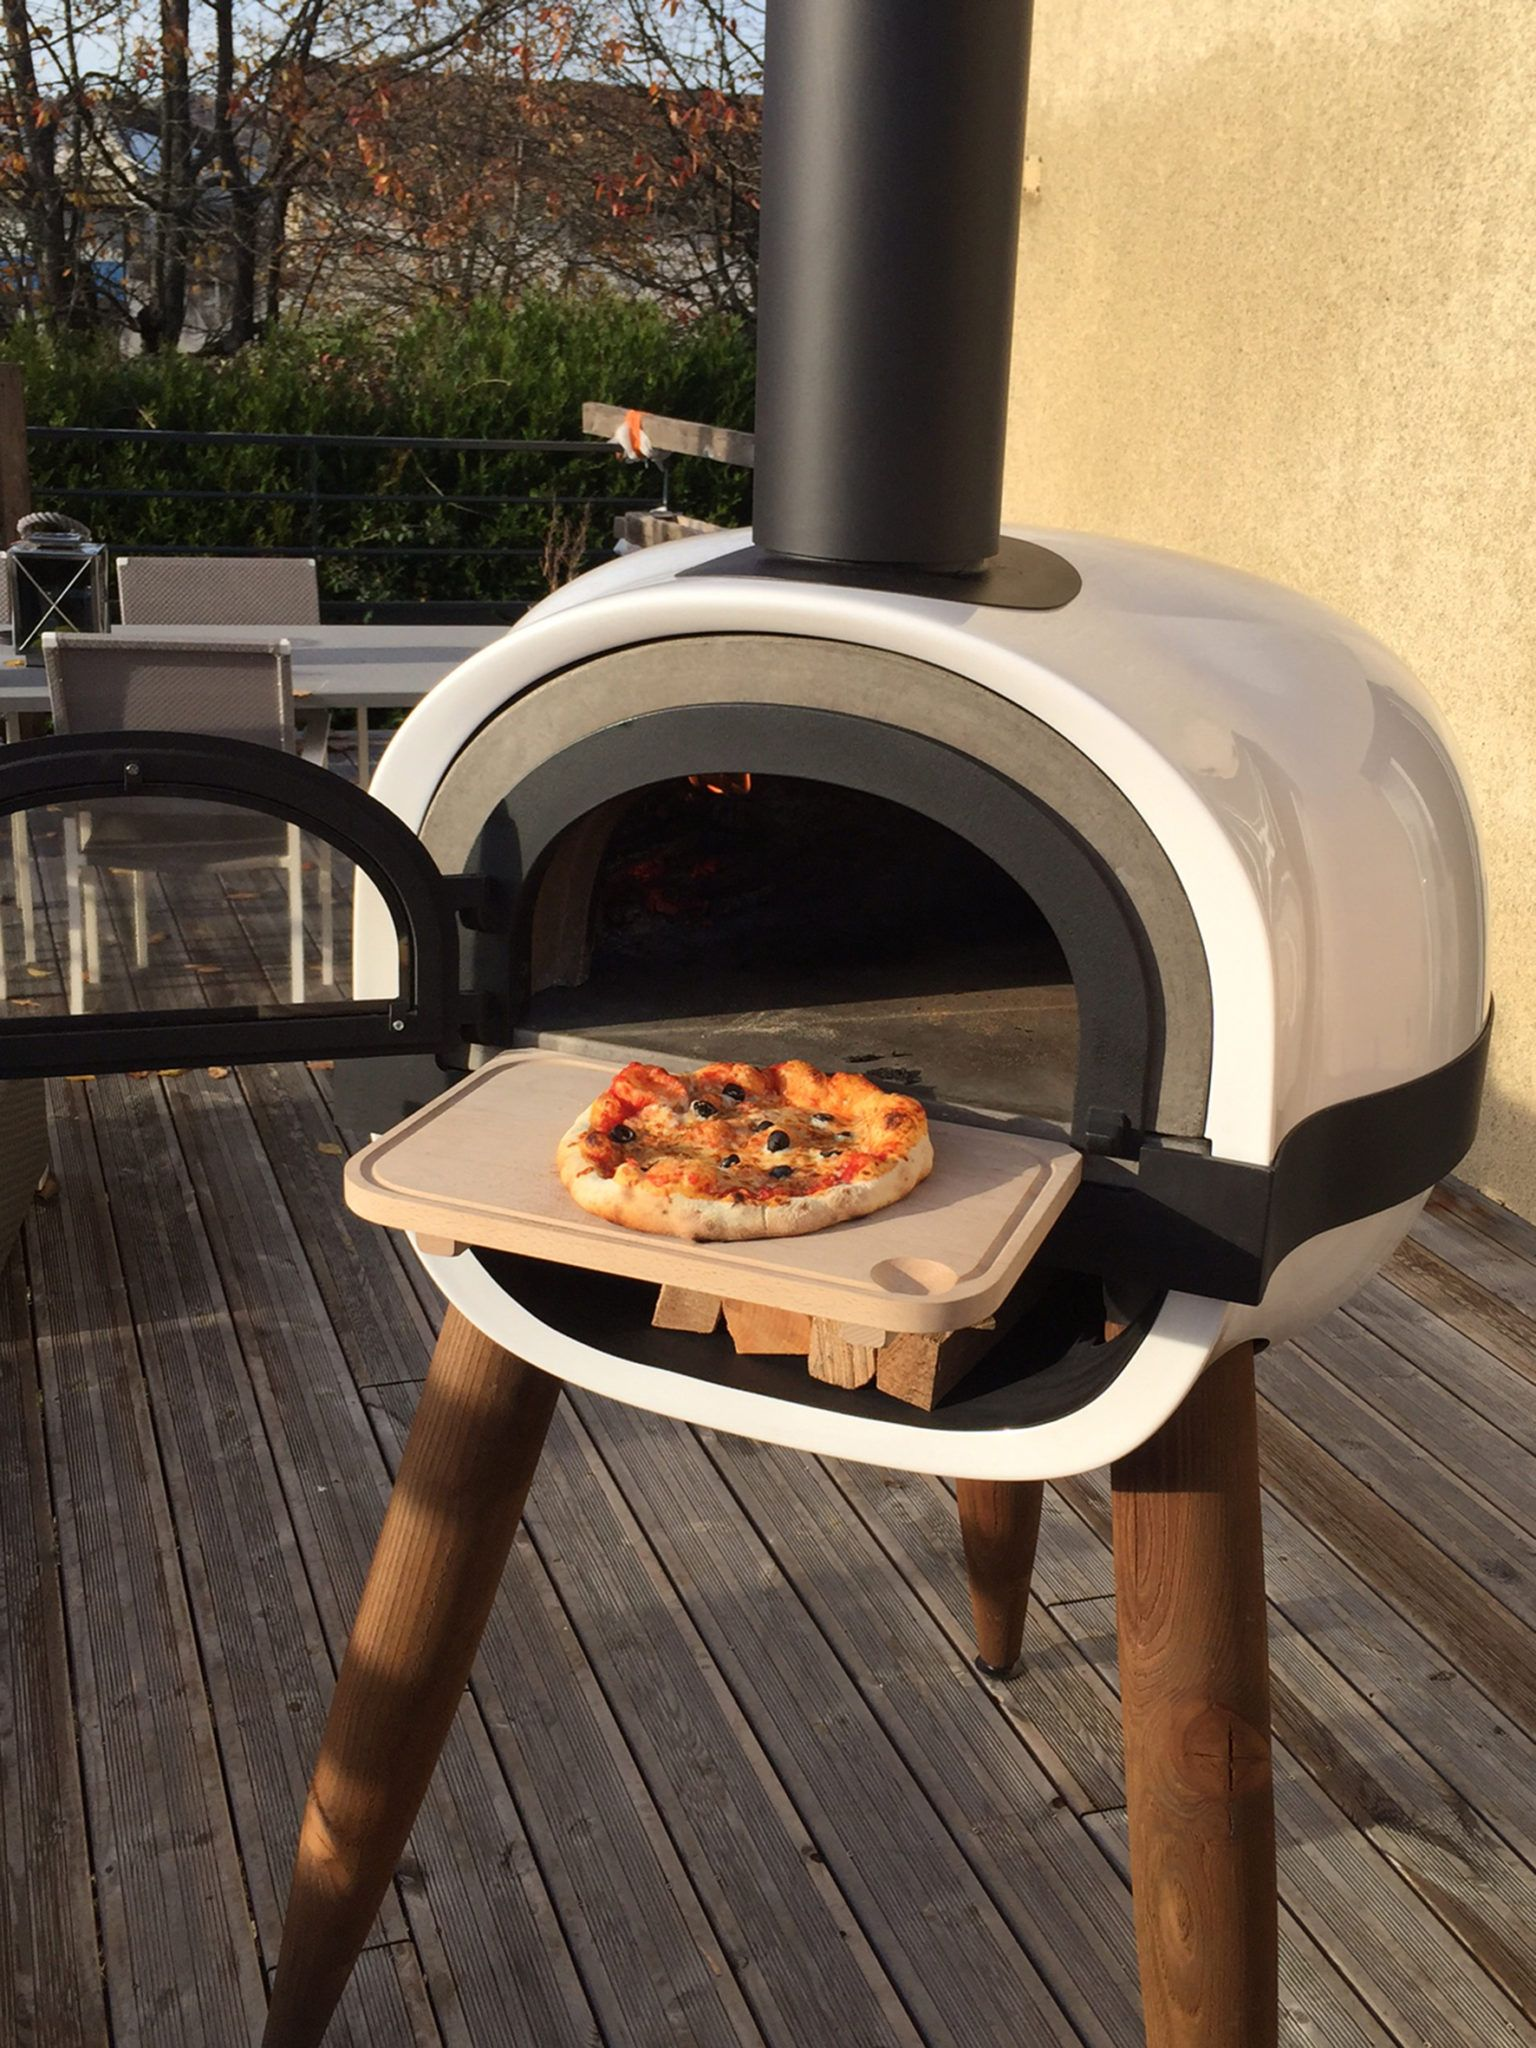 Alfred pizza oven domestic woodfired ovens pizza ovens